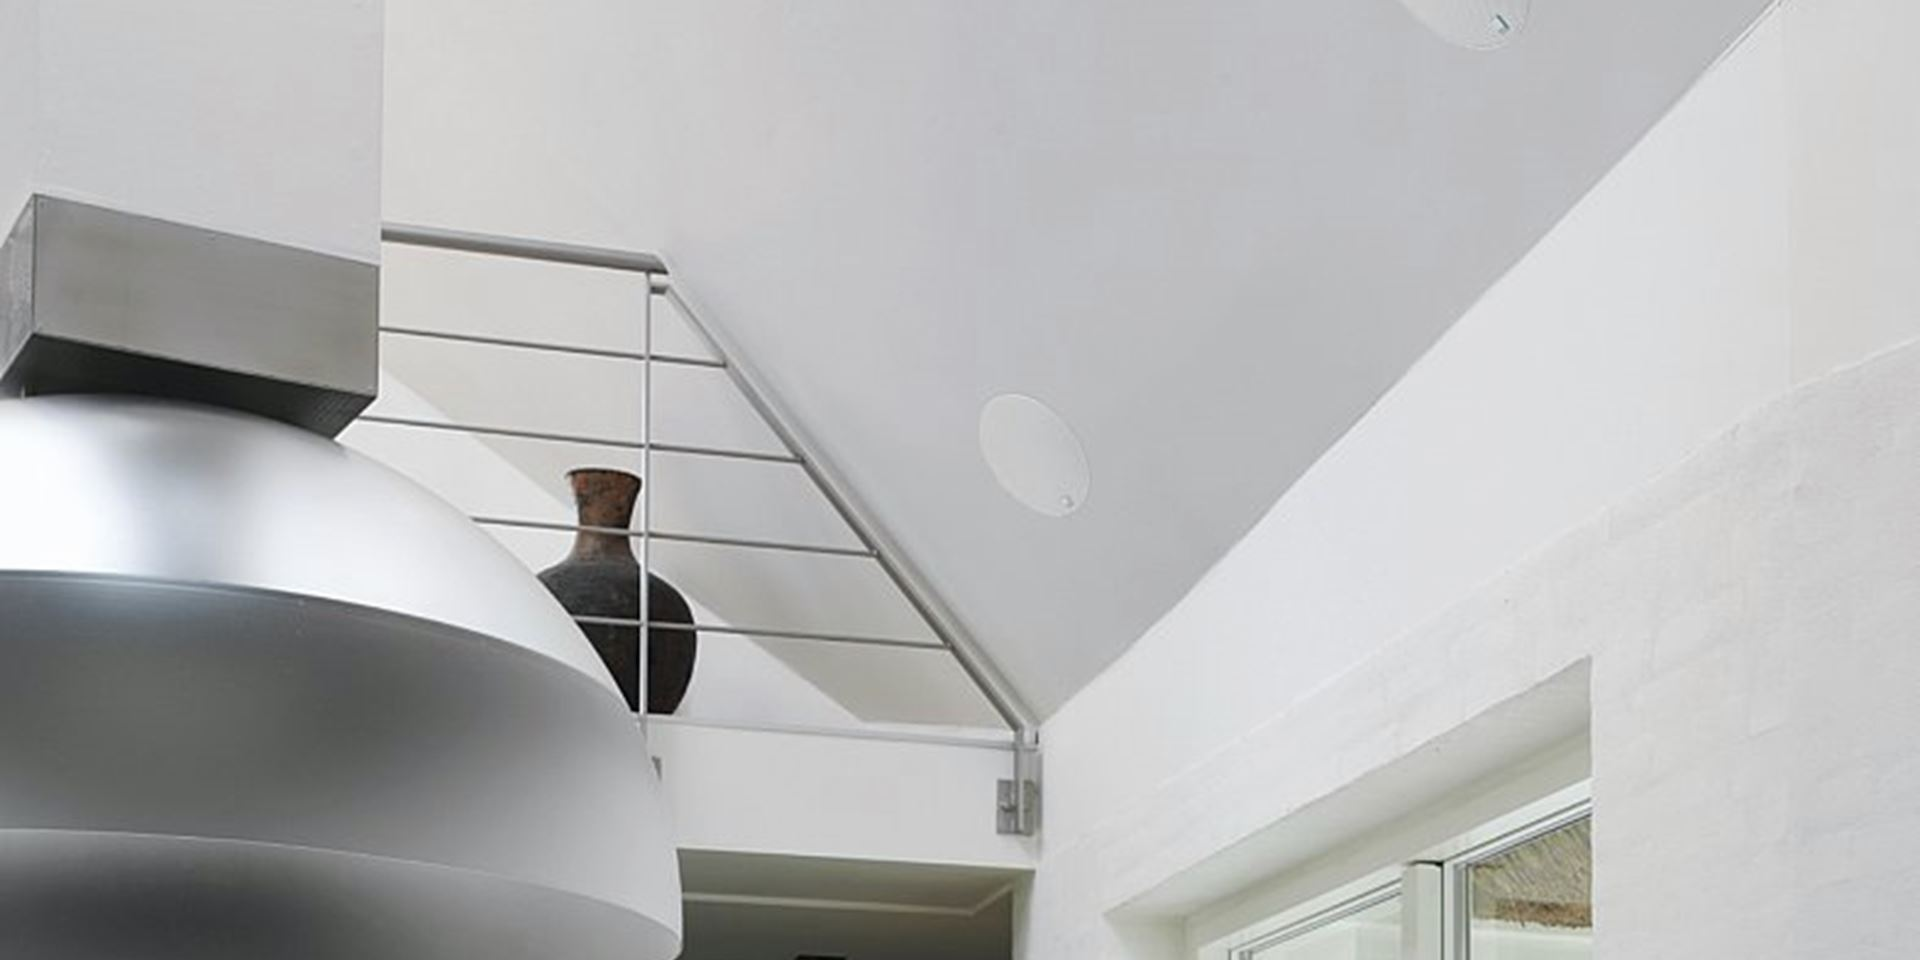 In Ceiling speaker on a white wall ledge in a house